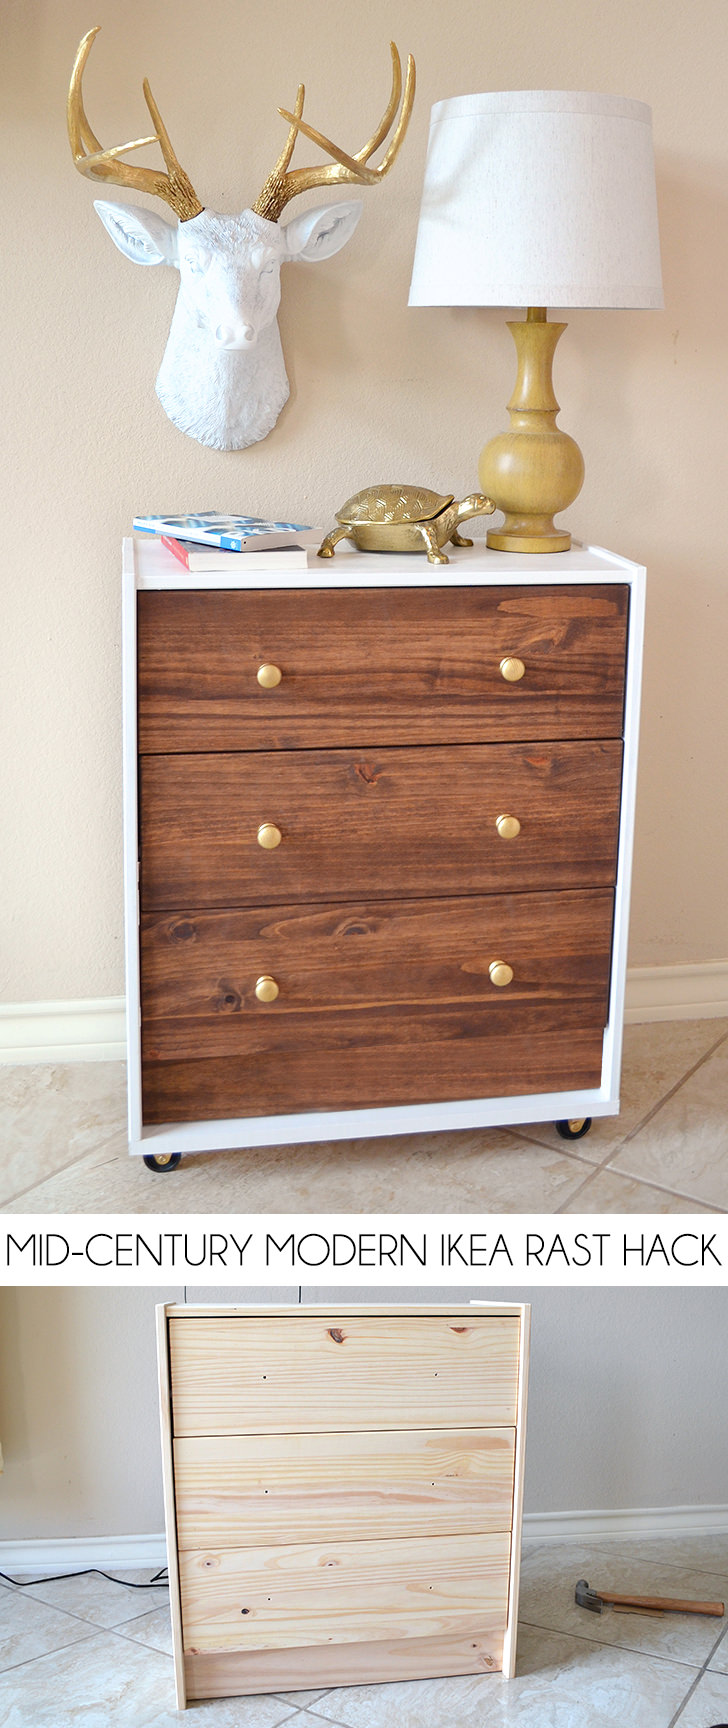 This mid century modern chest stained with gold knobs is farmhouse chic.